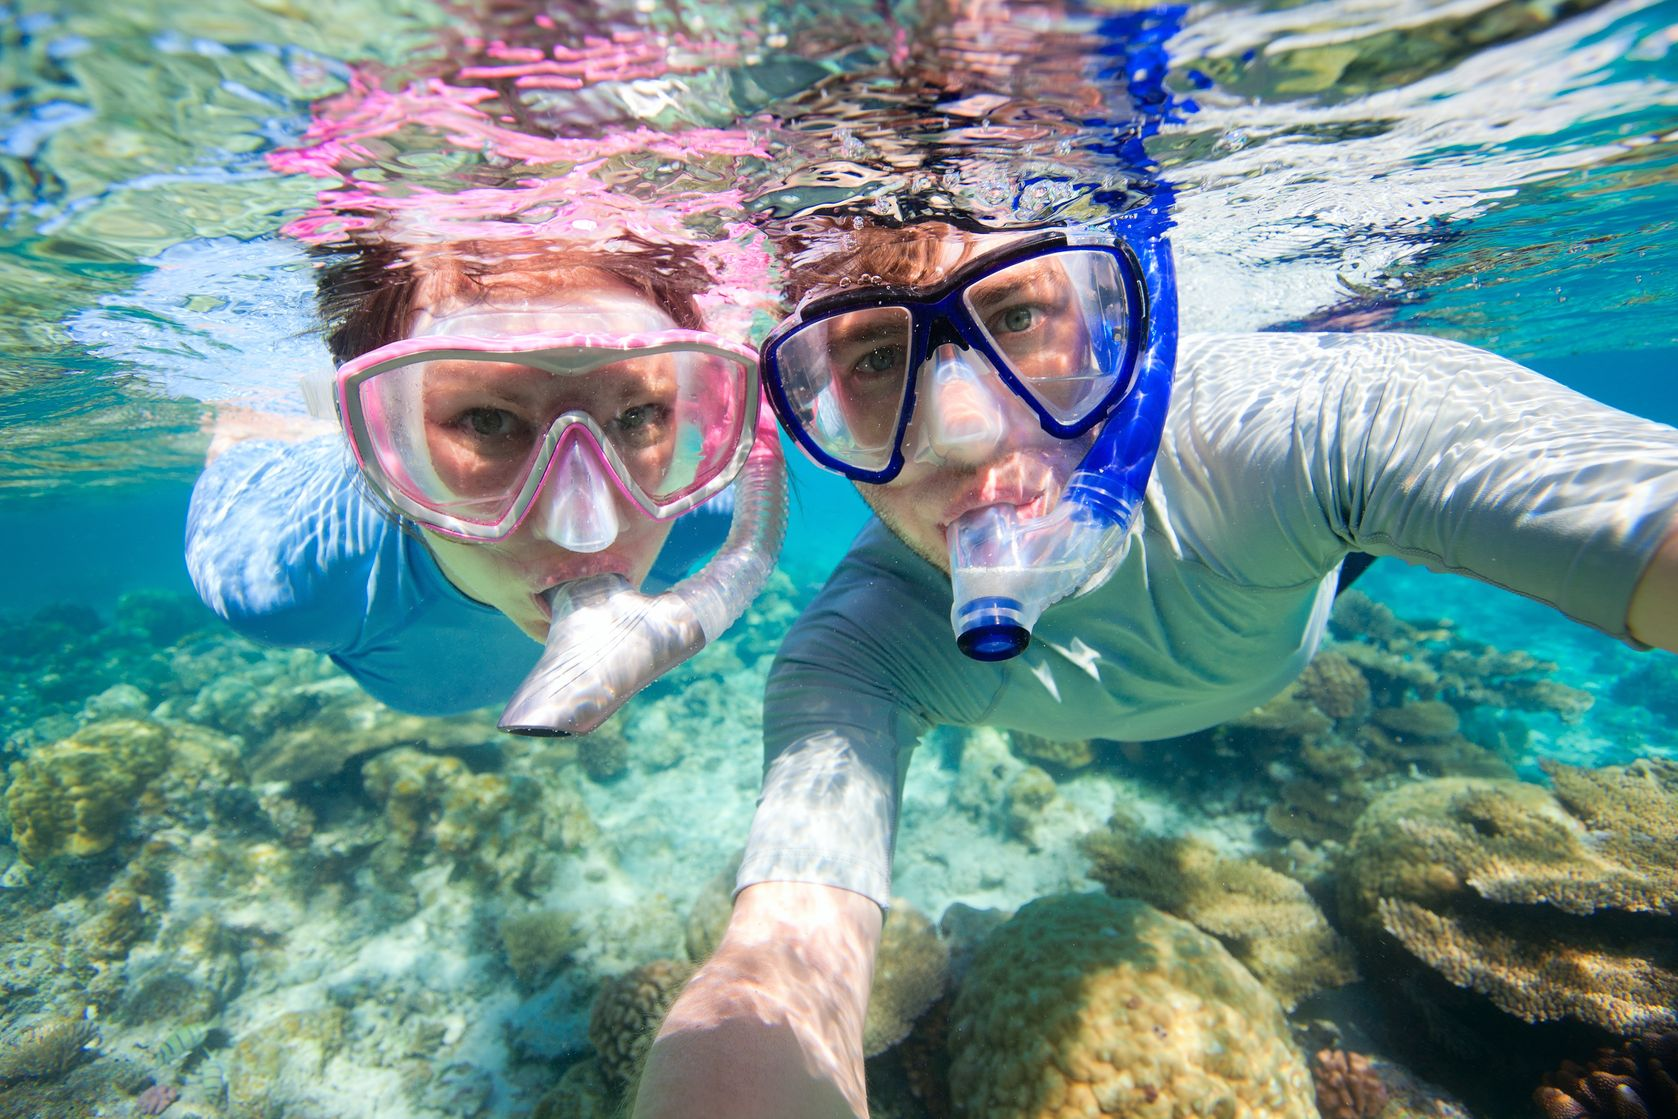 Lo snorkeling come alternativa all'ozio in vacanza